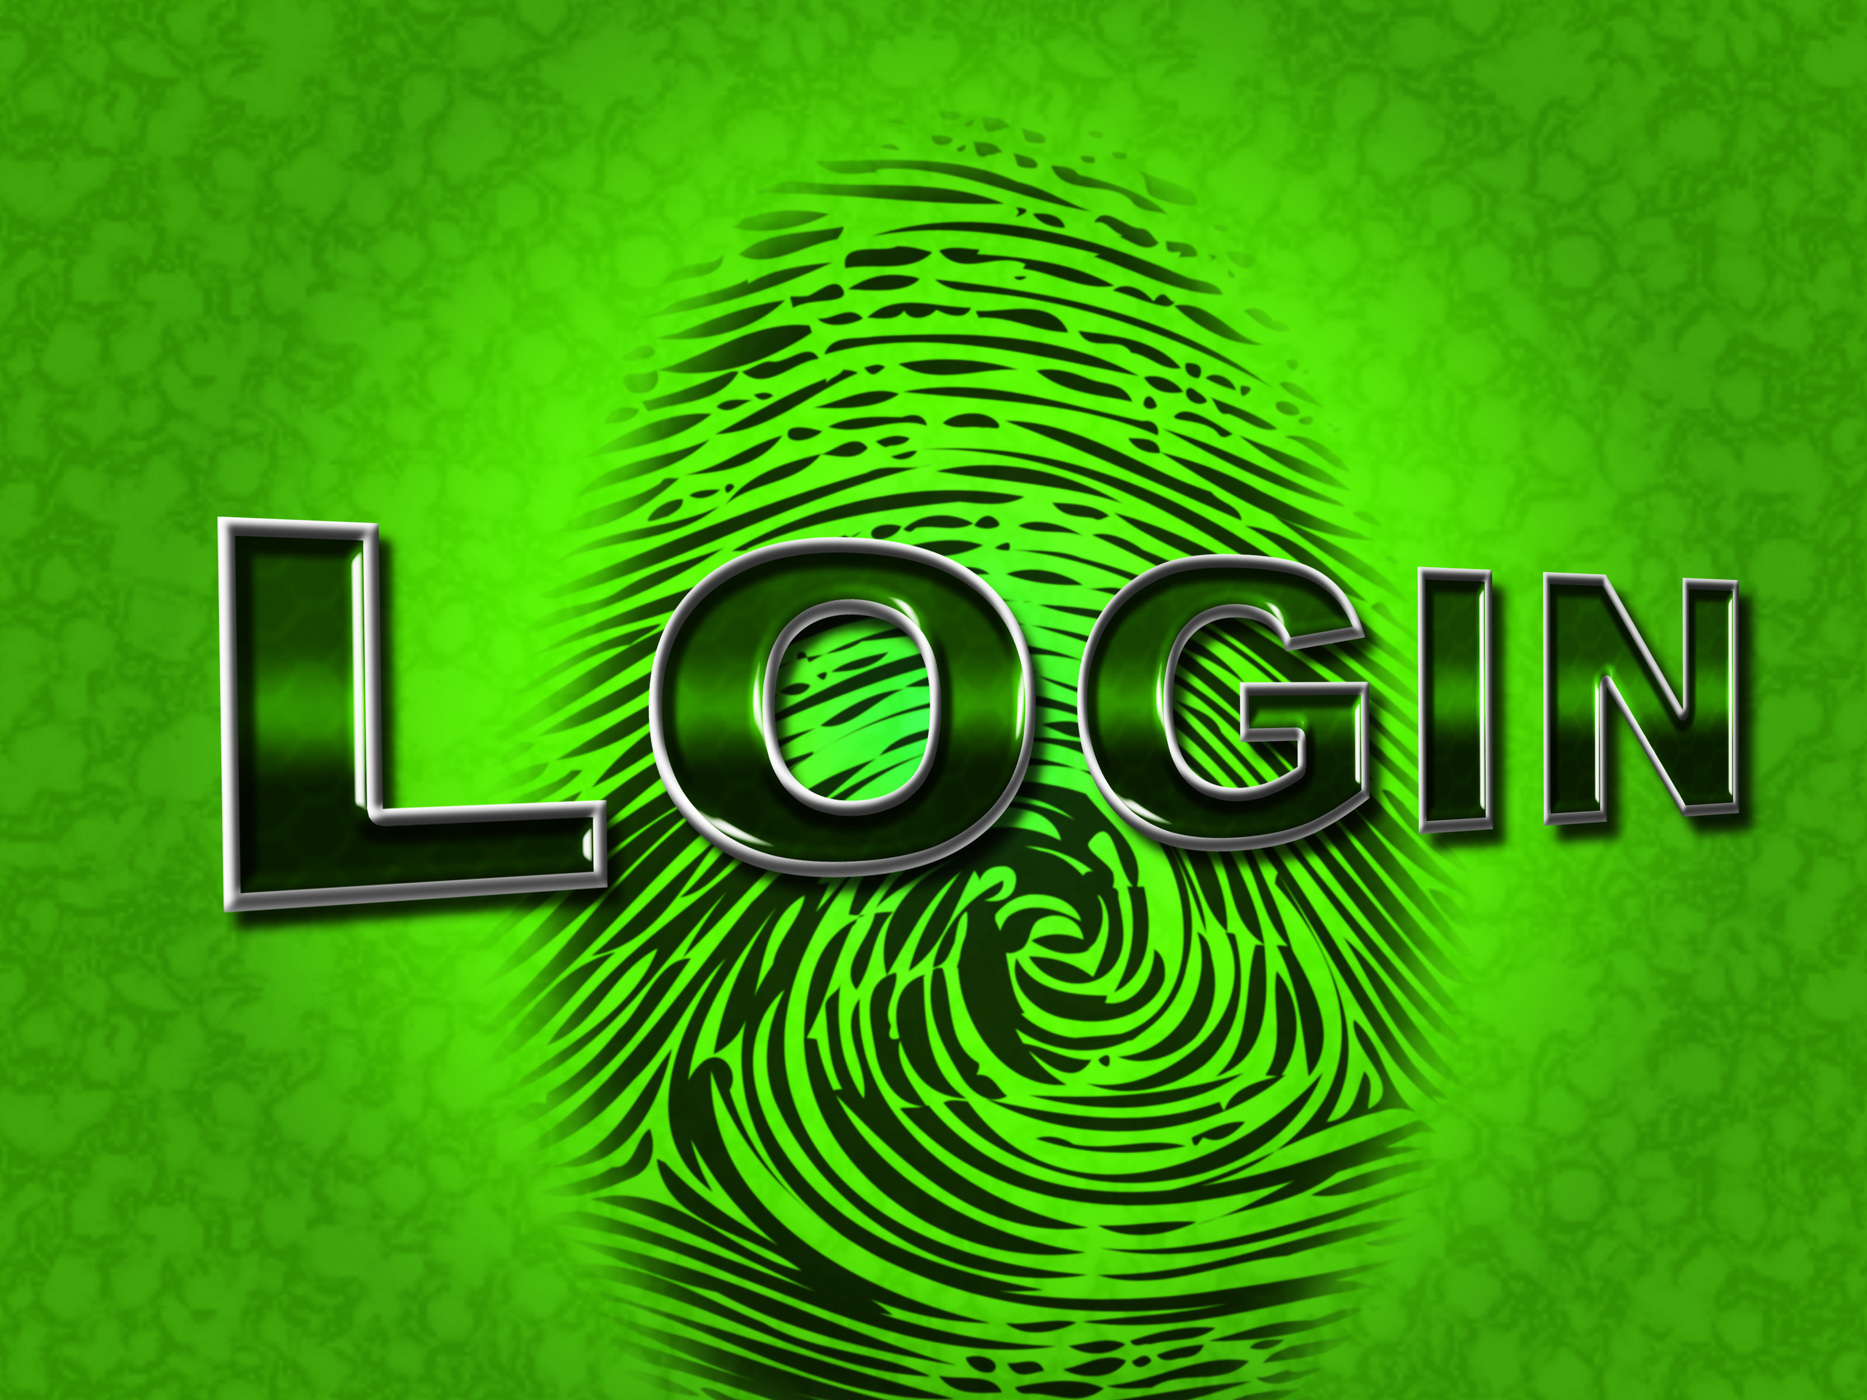 Login security shows logon restricted and username photo